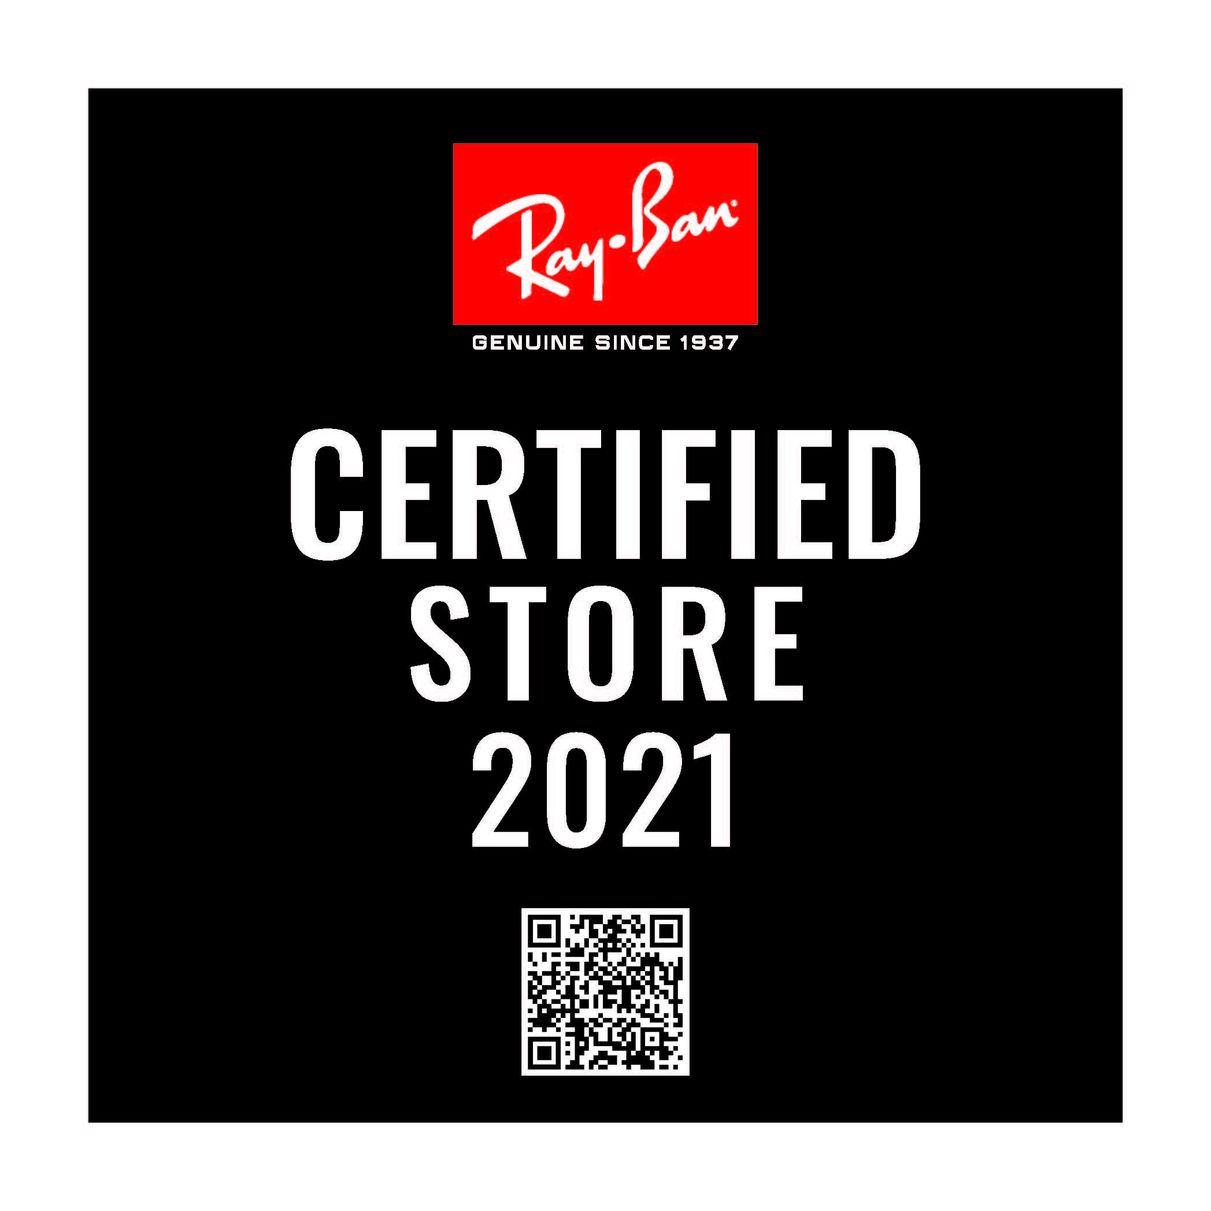 Ray Ban Certified Store 2021